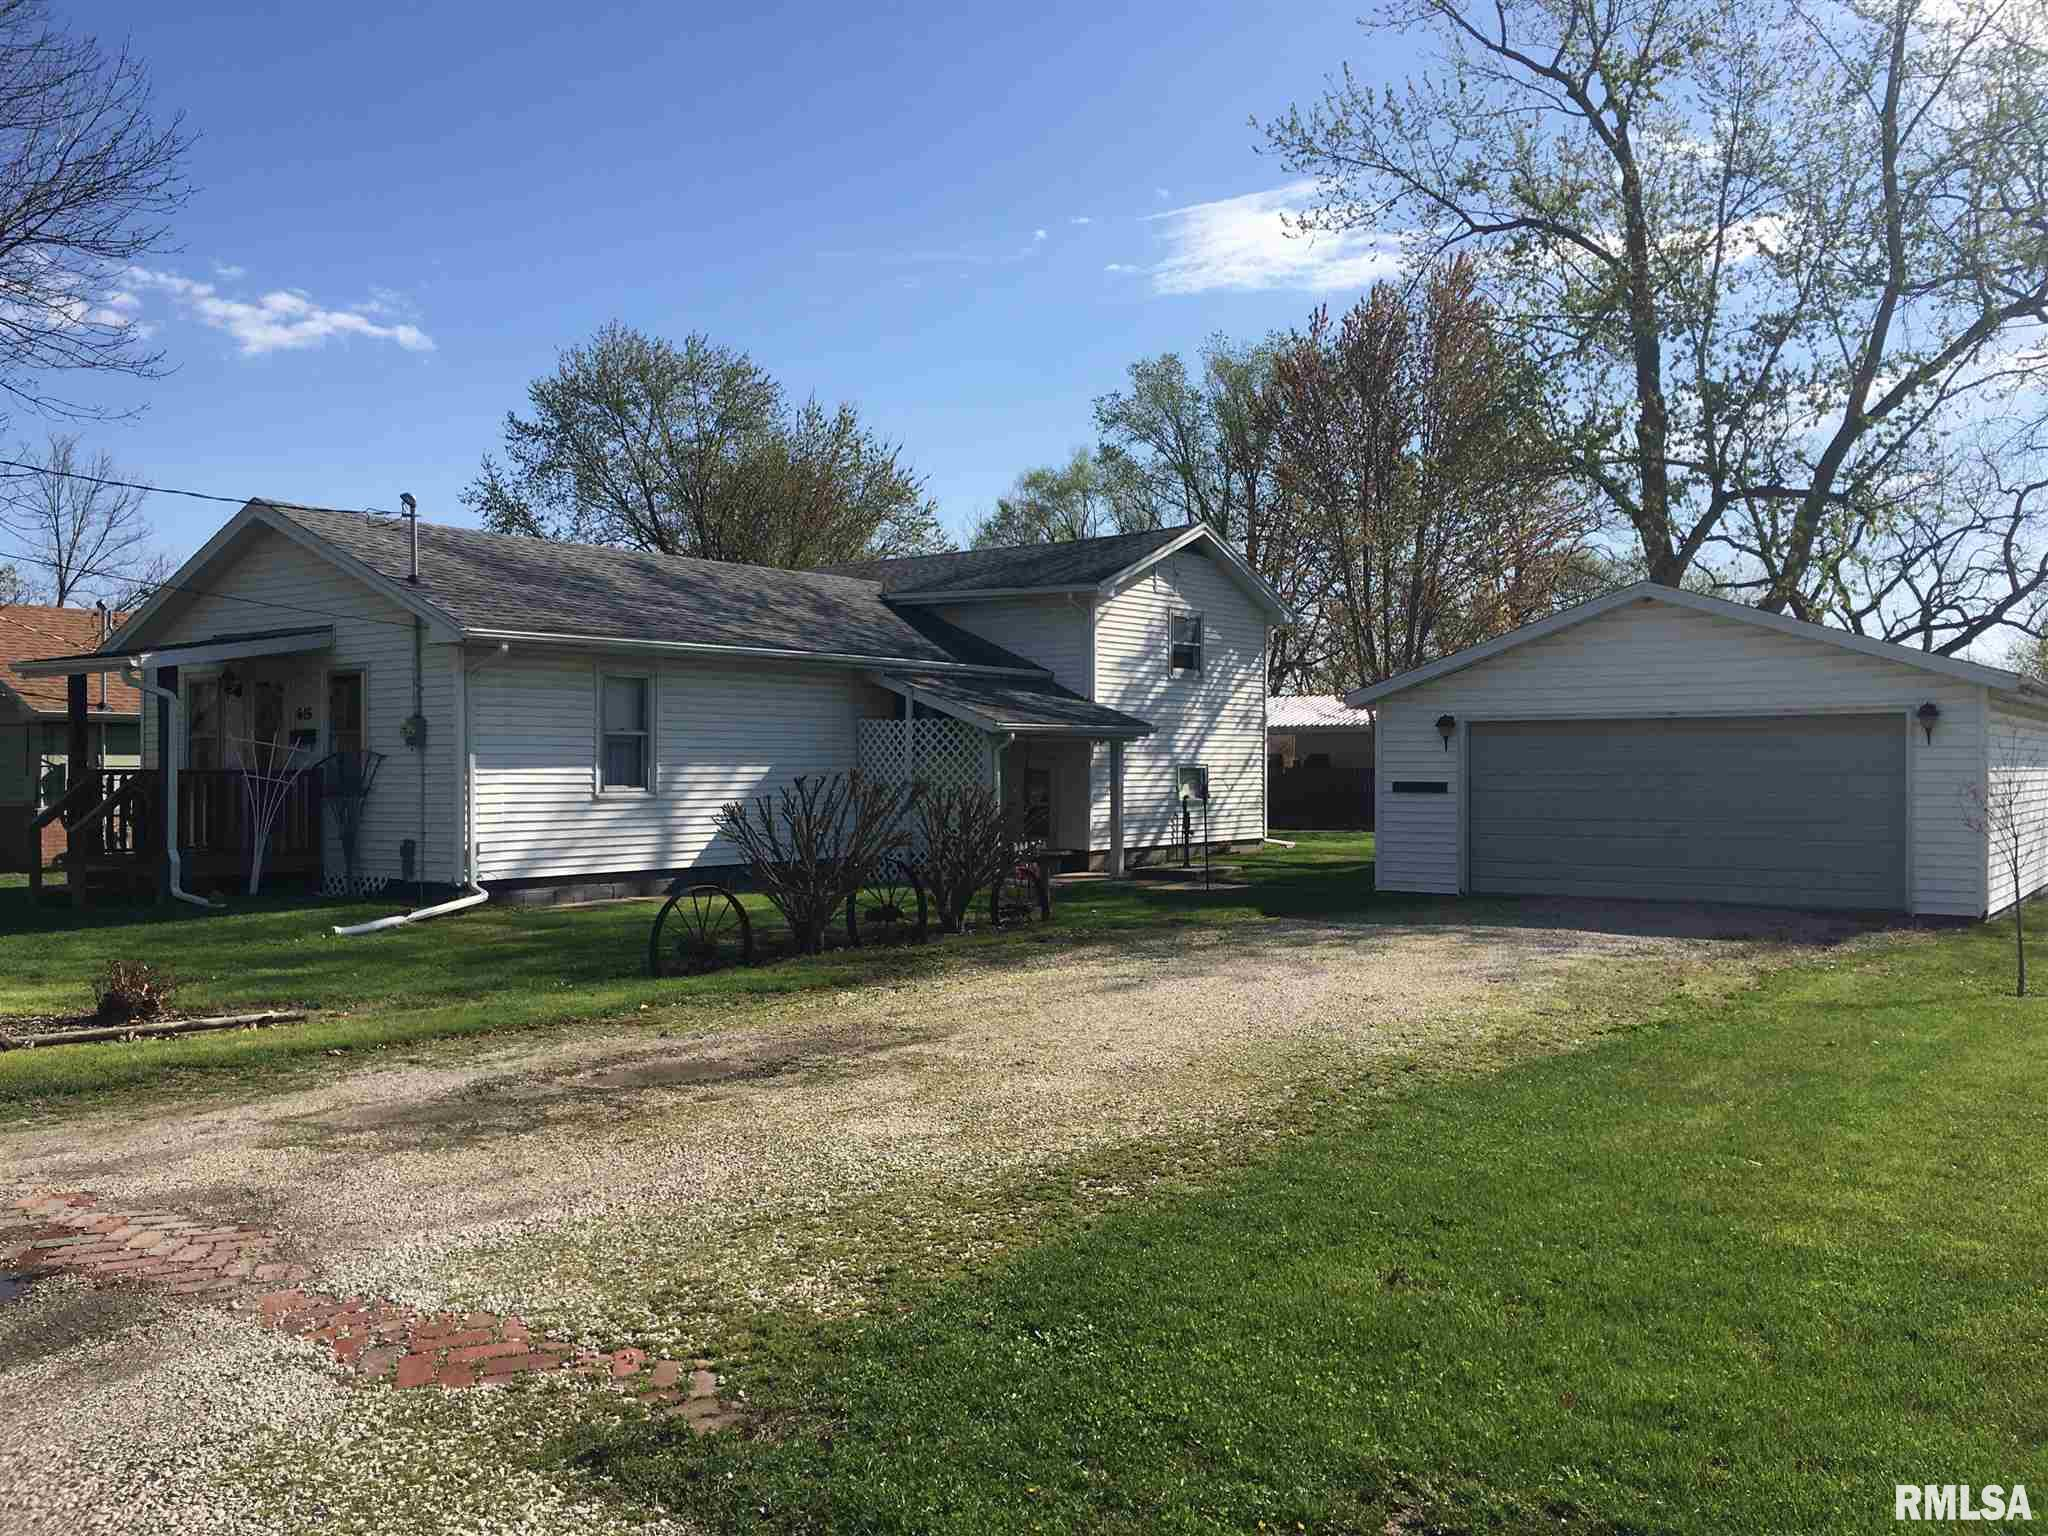 615 S CHESTNUT Property Photo - Lewistown, IL real estate listing